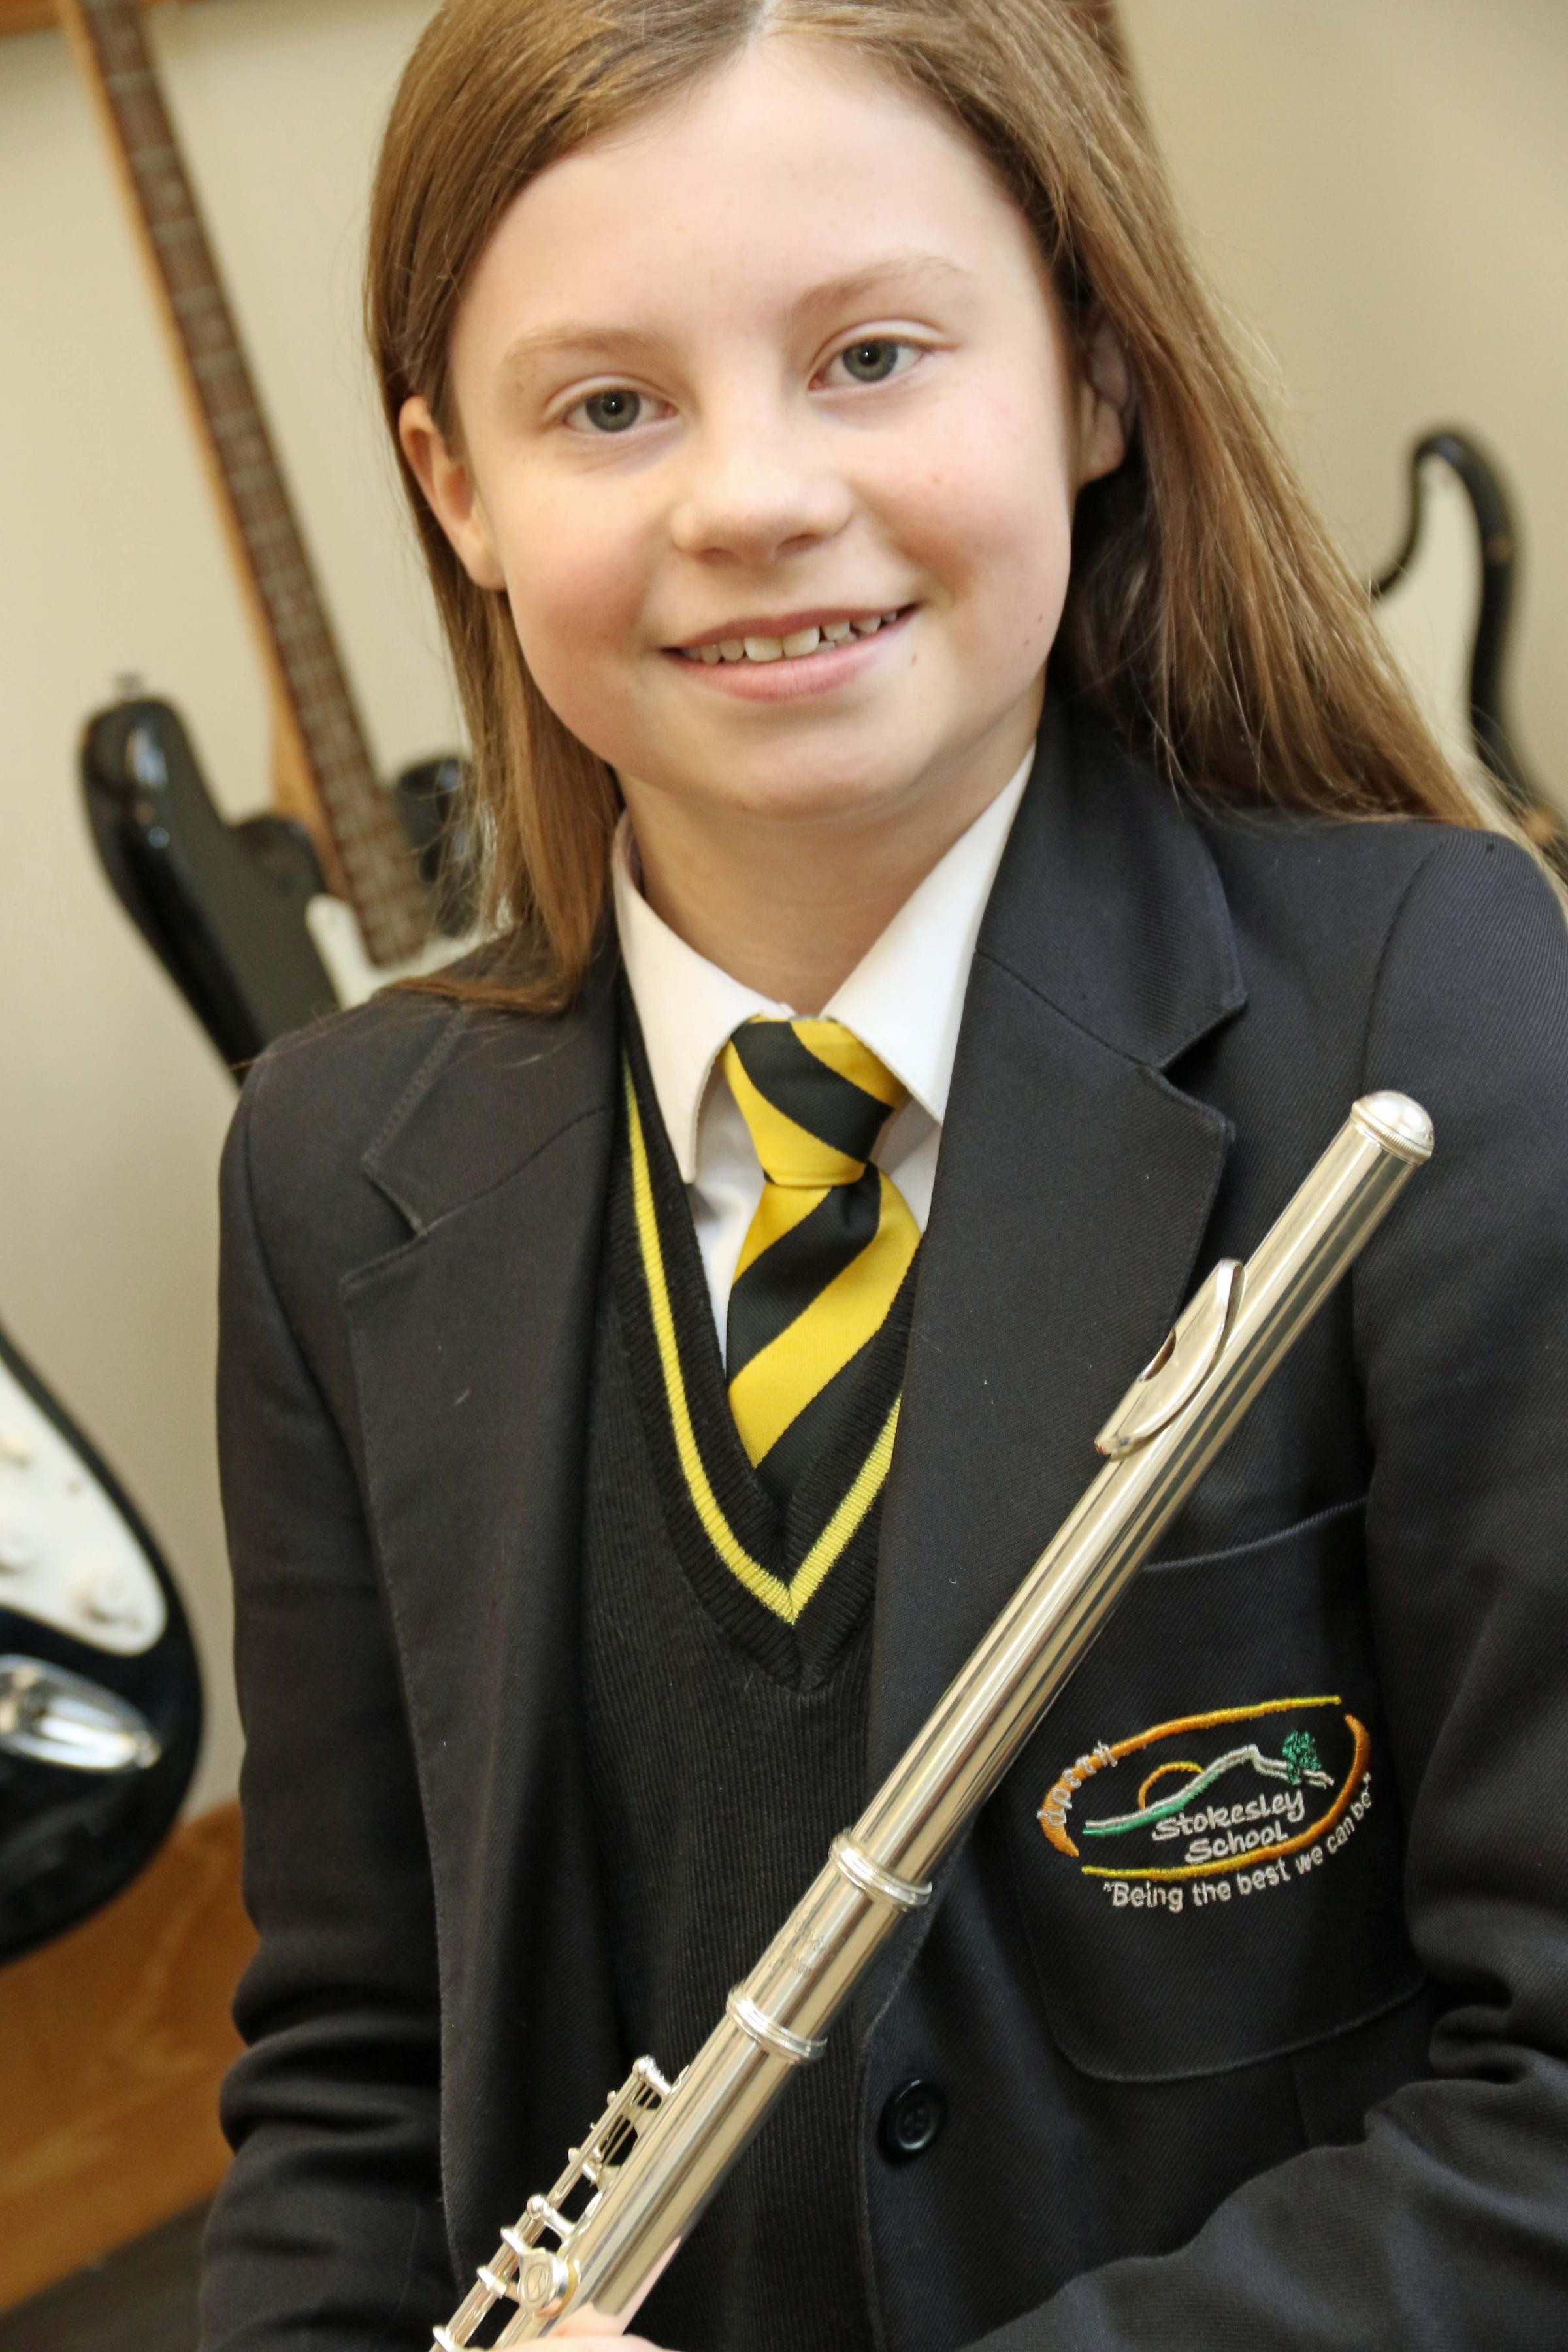 SUCCESS: Stokelsey School flautist Lilly Smith